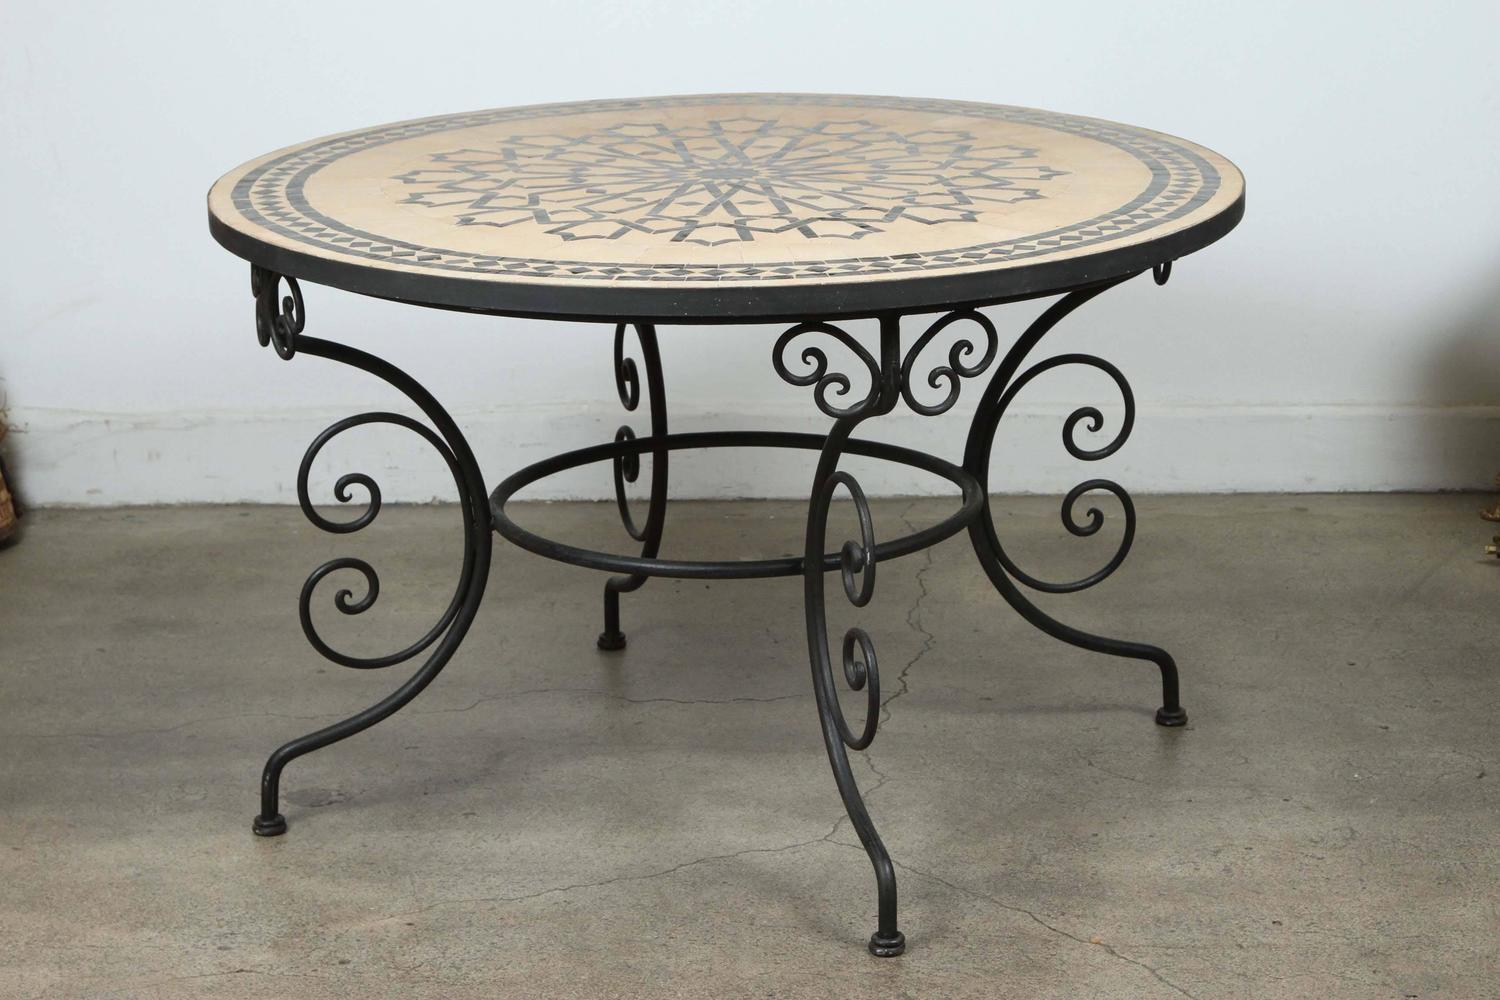 Outdoor Dining Set Round Table.Moroccan Outdoor Round Mosaic Tile Dining Table On Iron Base 47 In